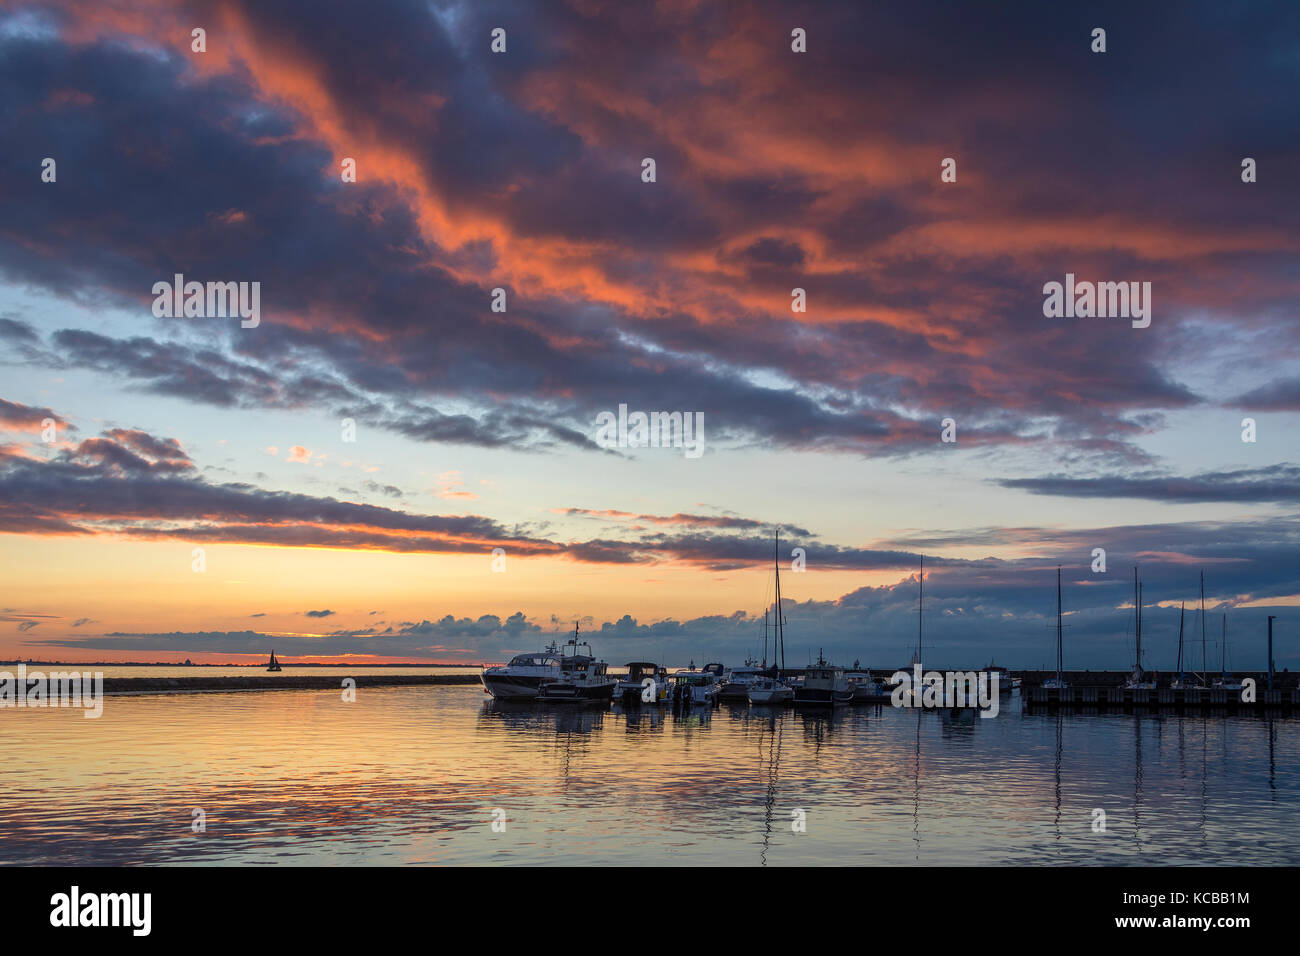 Sunset at Pirita Marina, Tallinn in Estonia. Pirita is one of the most prestigious and wealthiest districts of Tallinn, - Stock Image